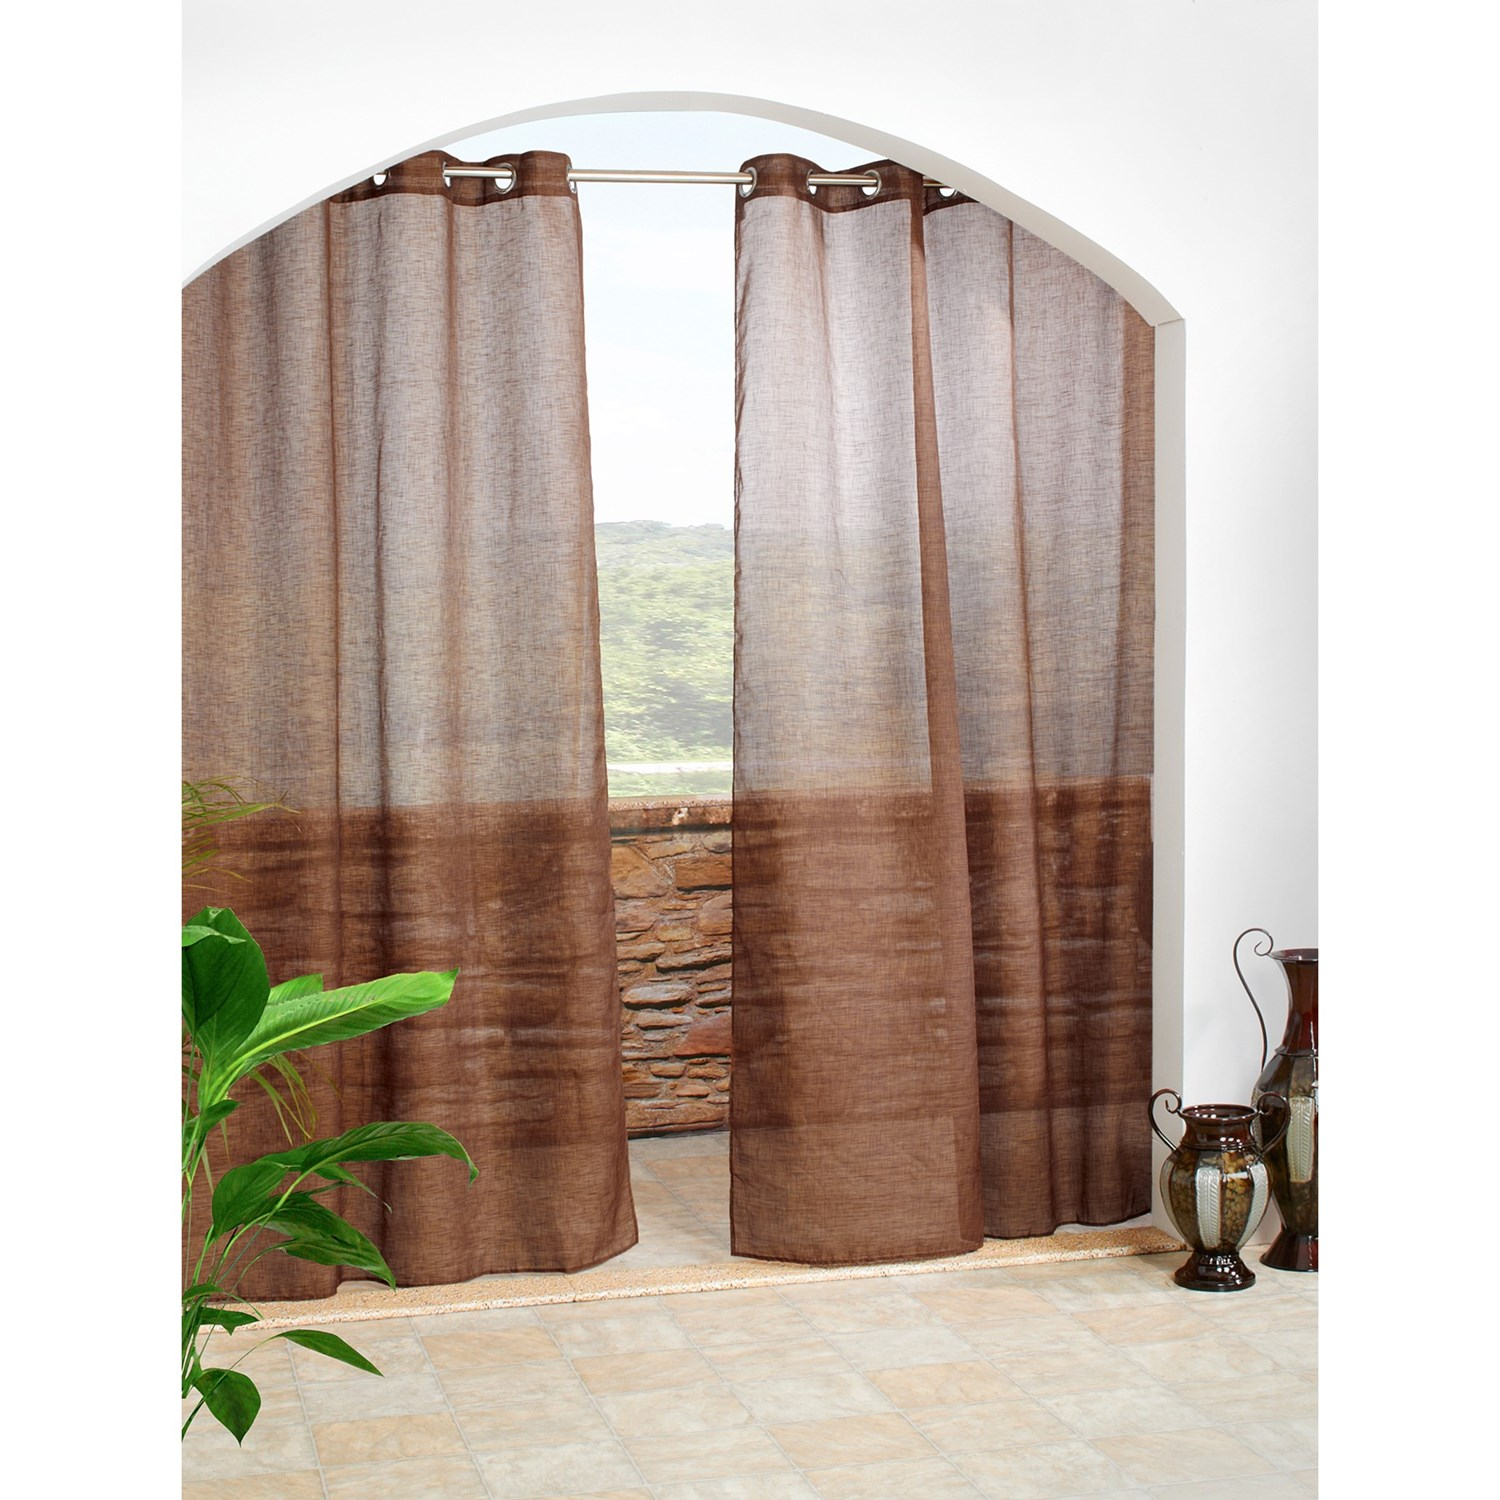 Balcony Curtains Indoor